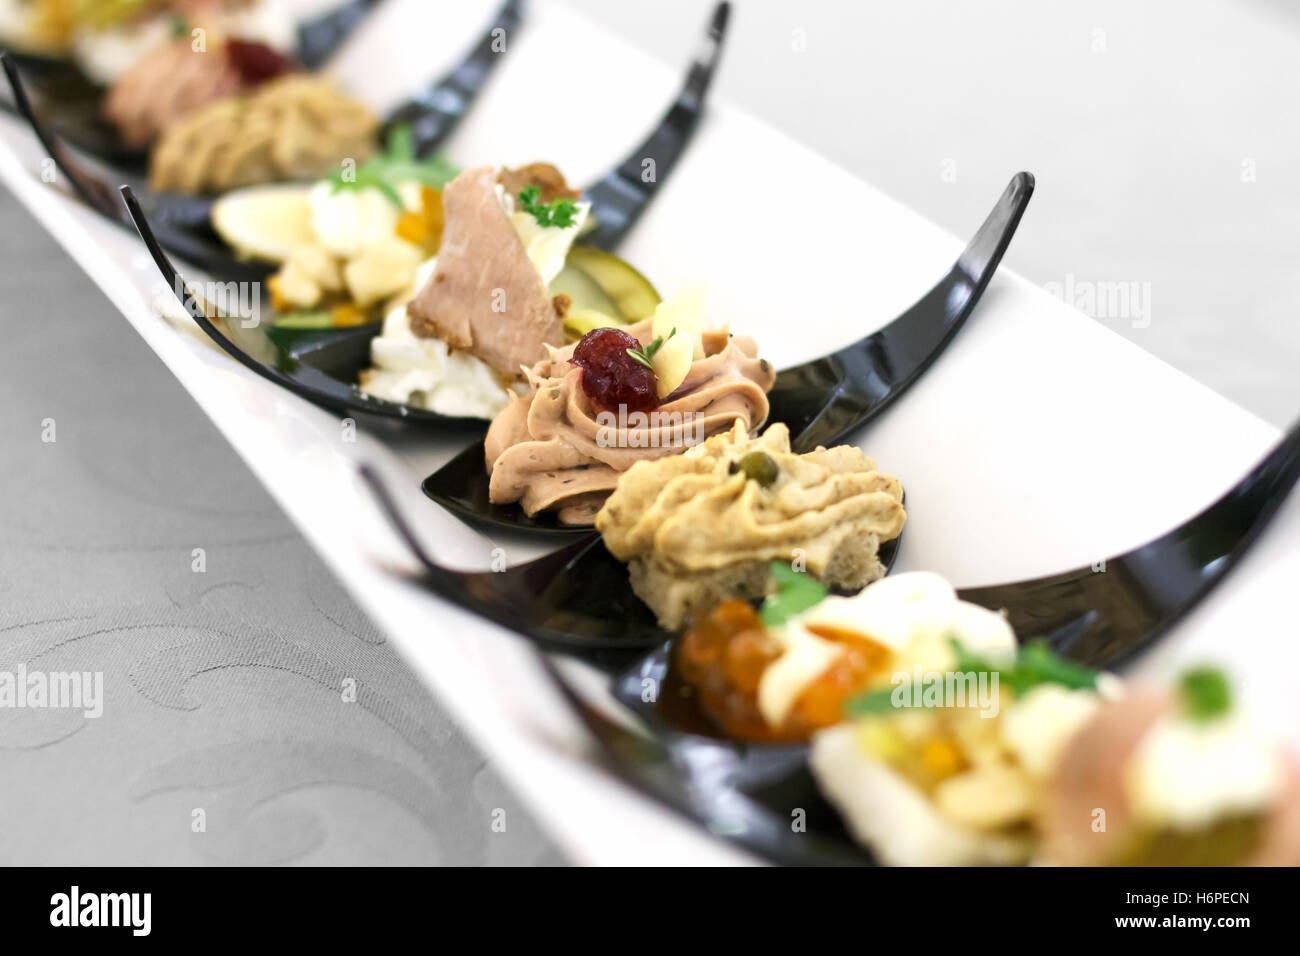 Canapes on black plastic spoons on ceramic tray. - Stock Image